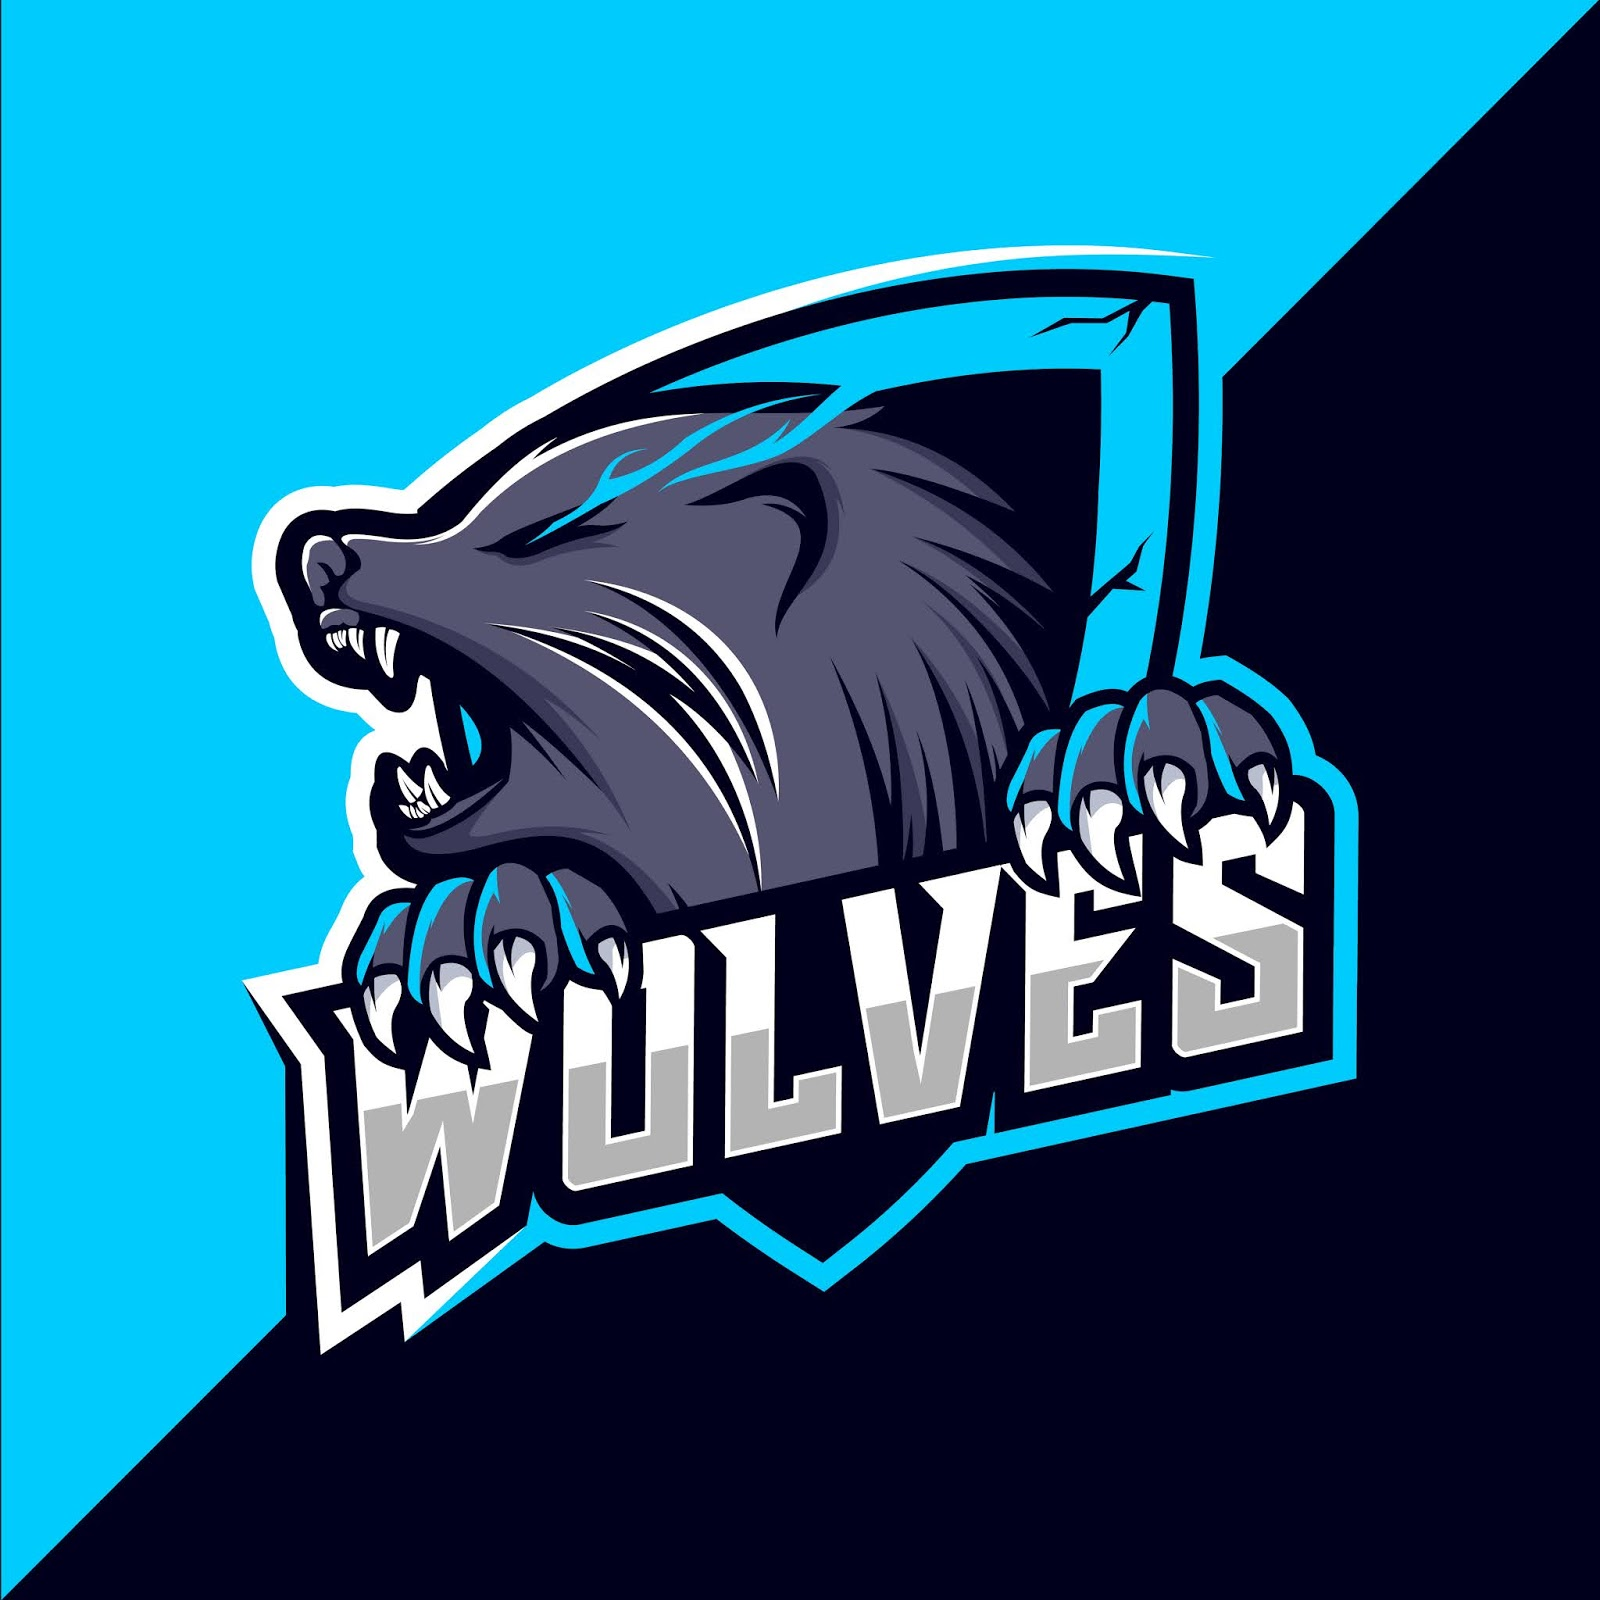 Wolf Wolves Mascot Esport Logo Design Free Download Vector CDR, AI, EPS and PNG Formats